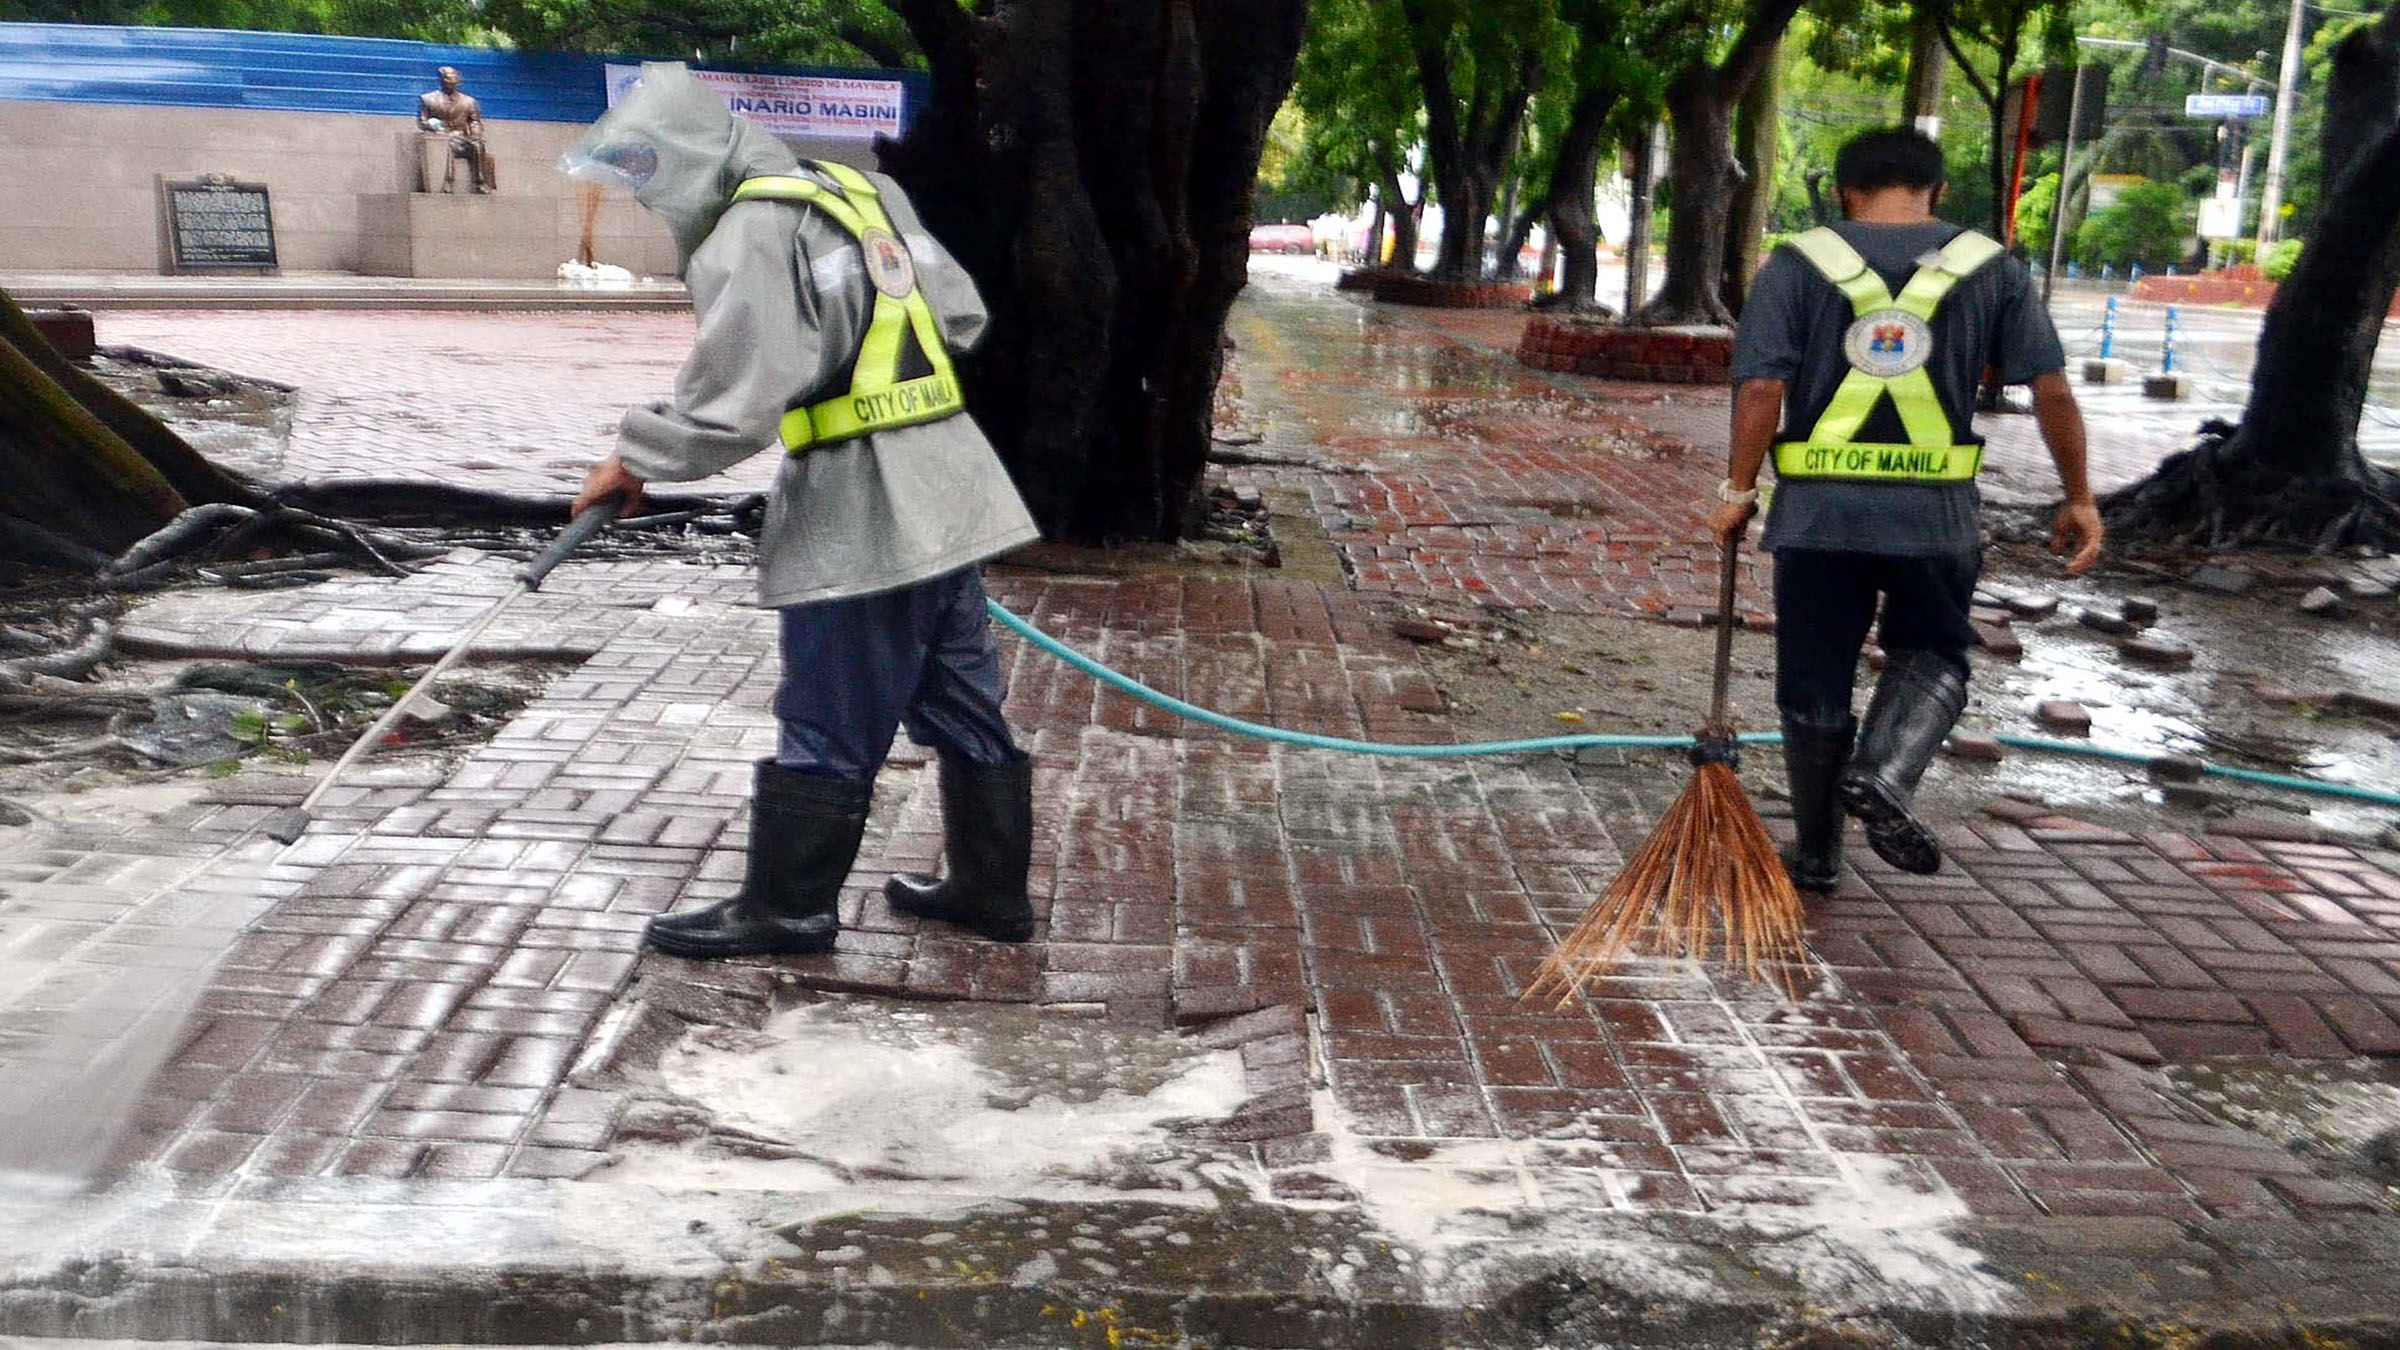 DISINFECTION CONTINUES, RAIN OR SHINE